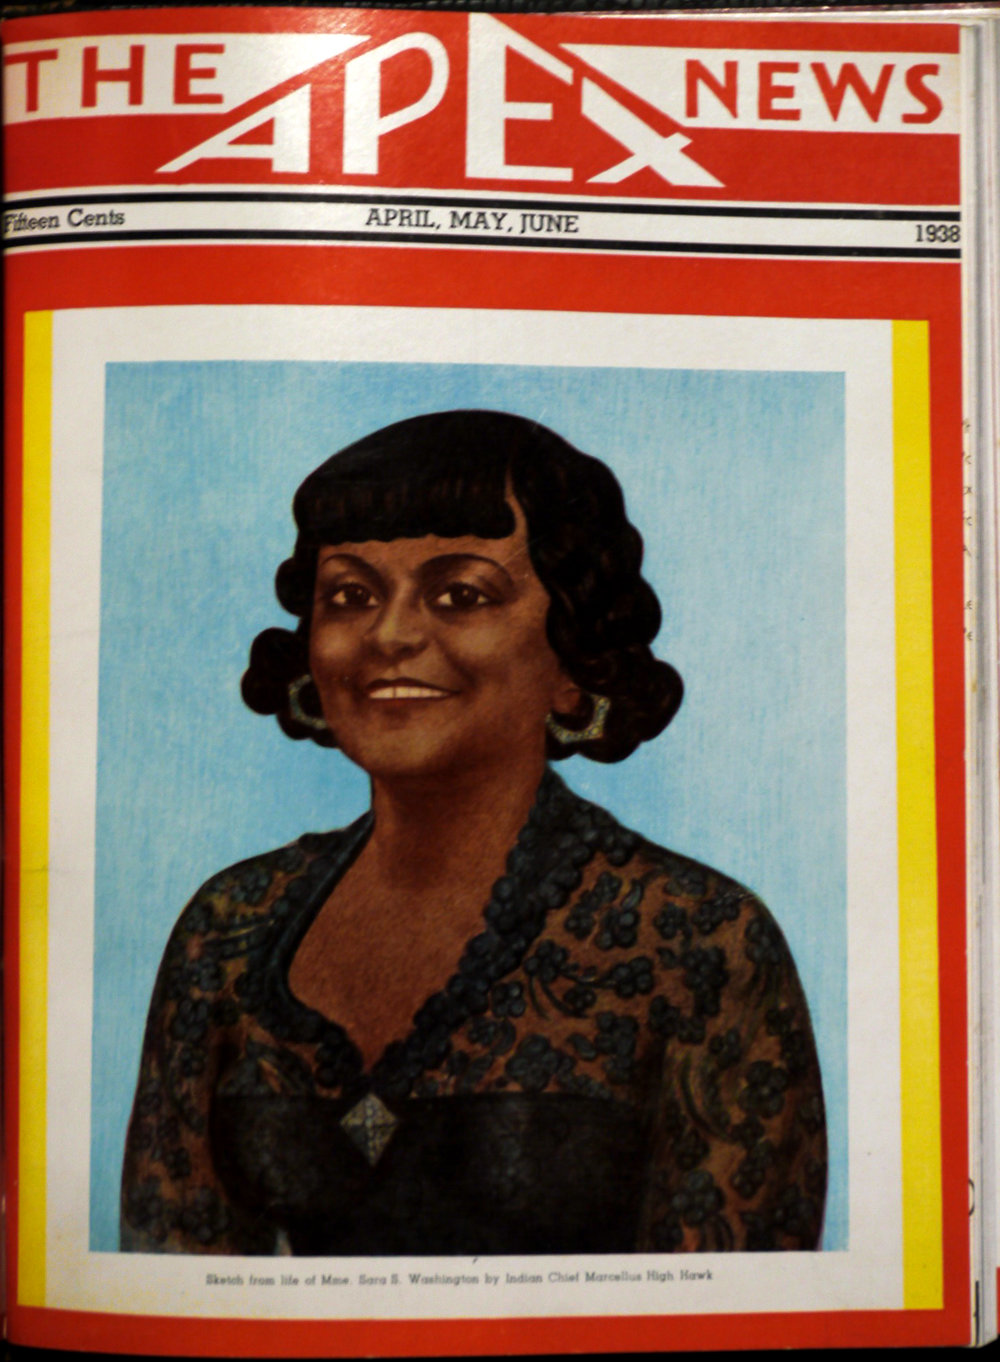 Mrs. Washington also founded the Apex News Company which printed a monthly trade publication from which one could purchase supplies for the salon or the home. It not only featured hairstyles, fashion, and makeup tips but the latest in interior design as well. News of graduates and their successes were interspersed with inspirational articles , cartoons and the obligatory letter from the editor.